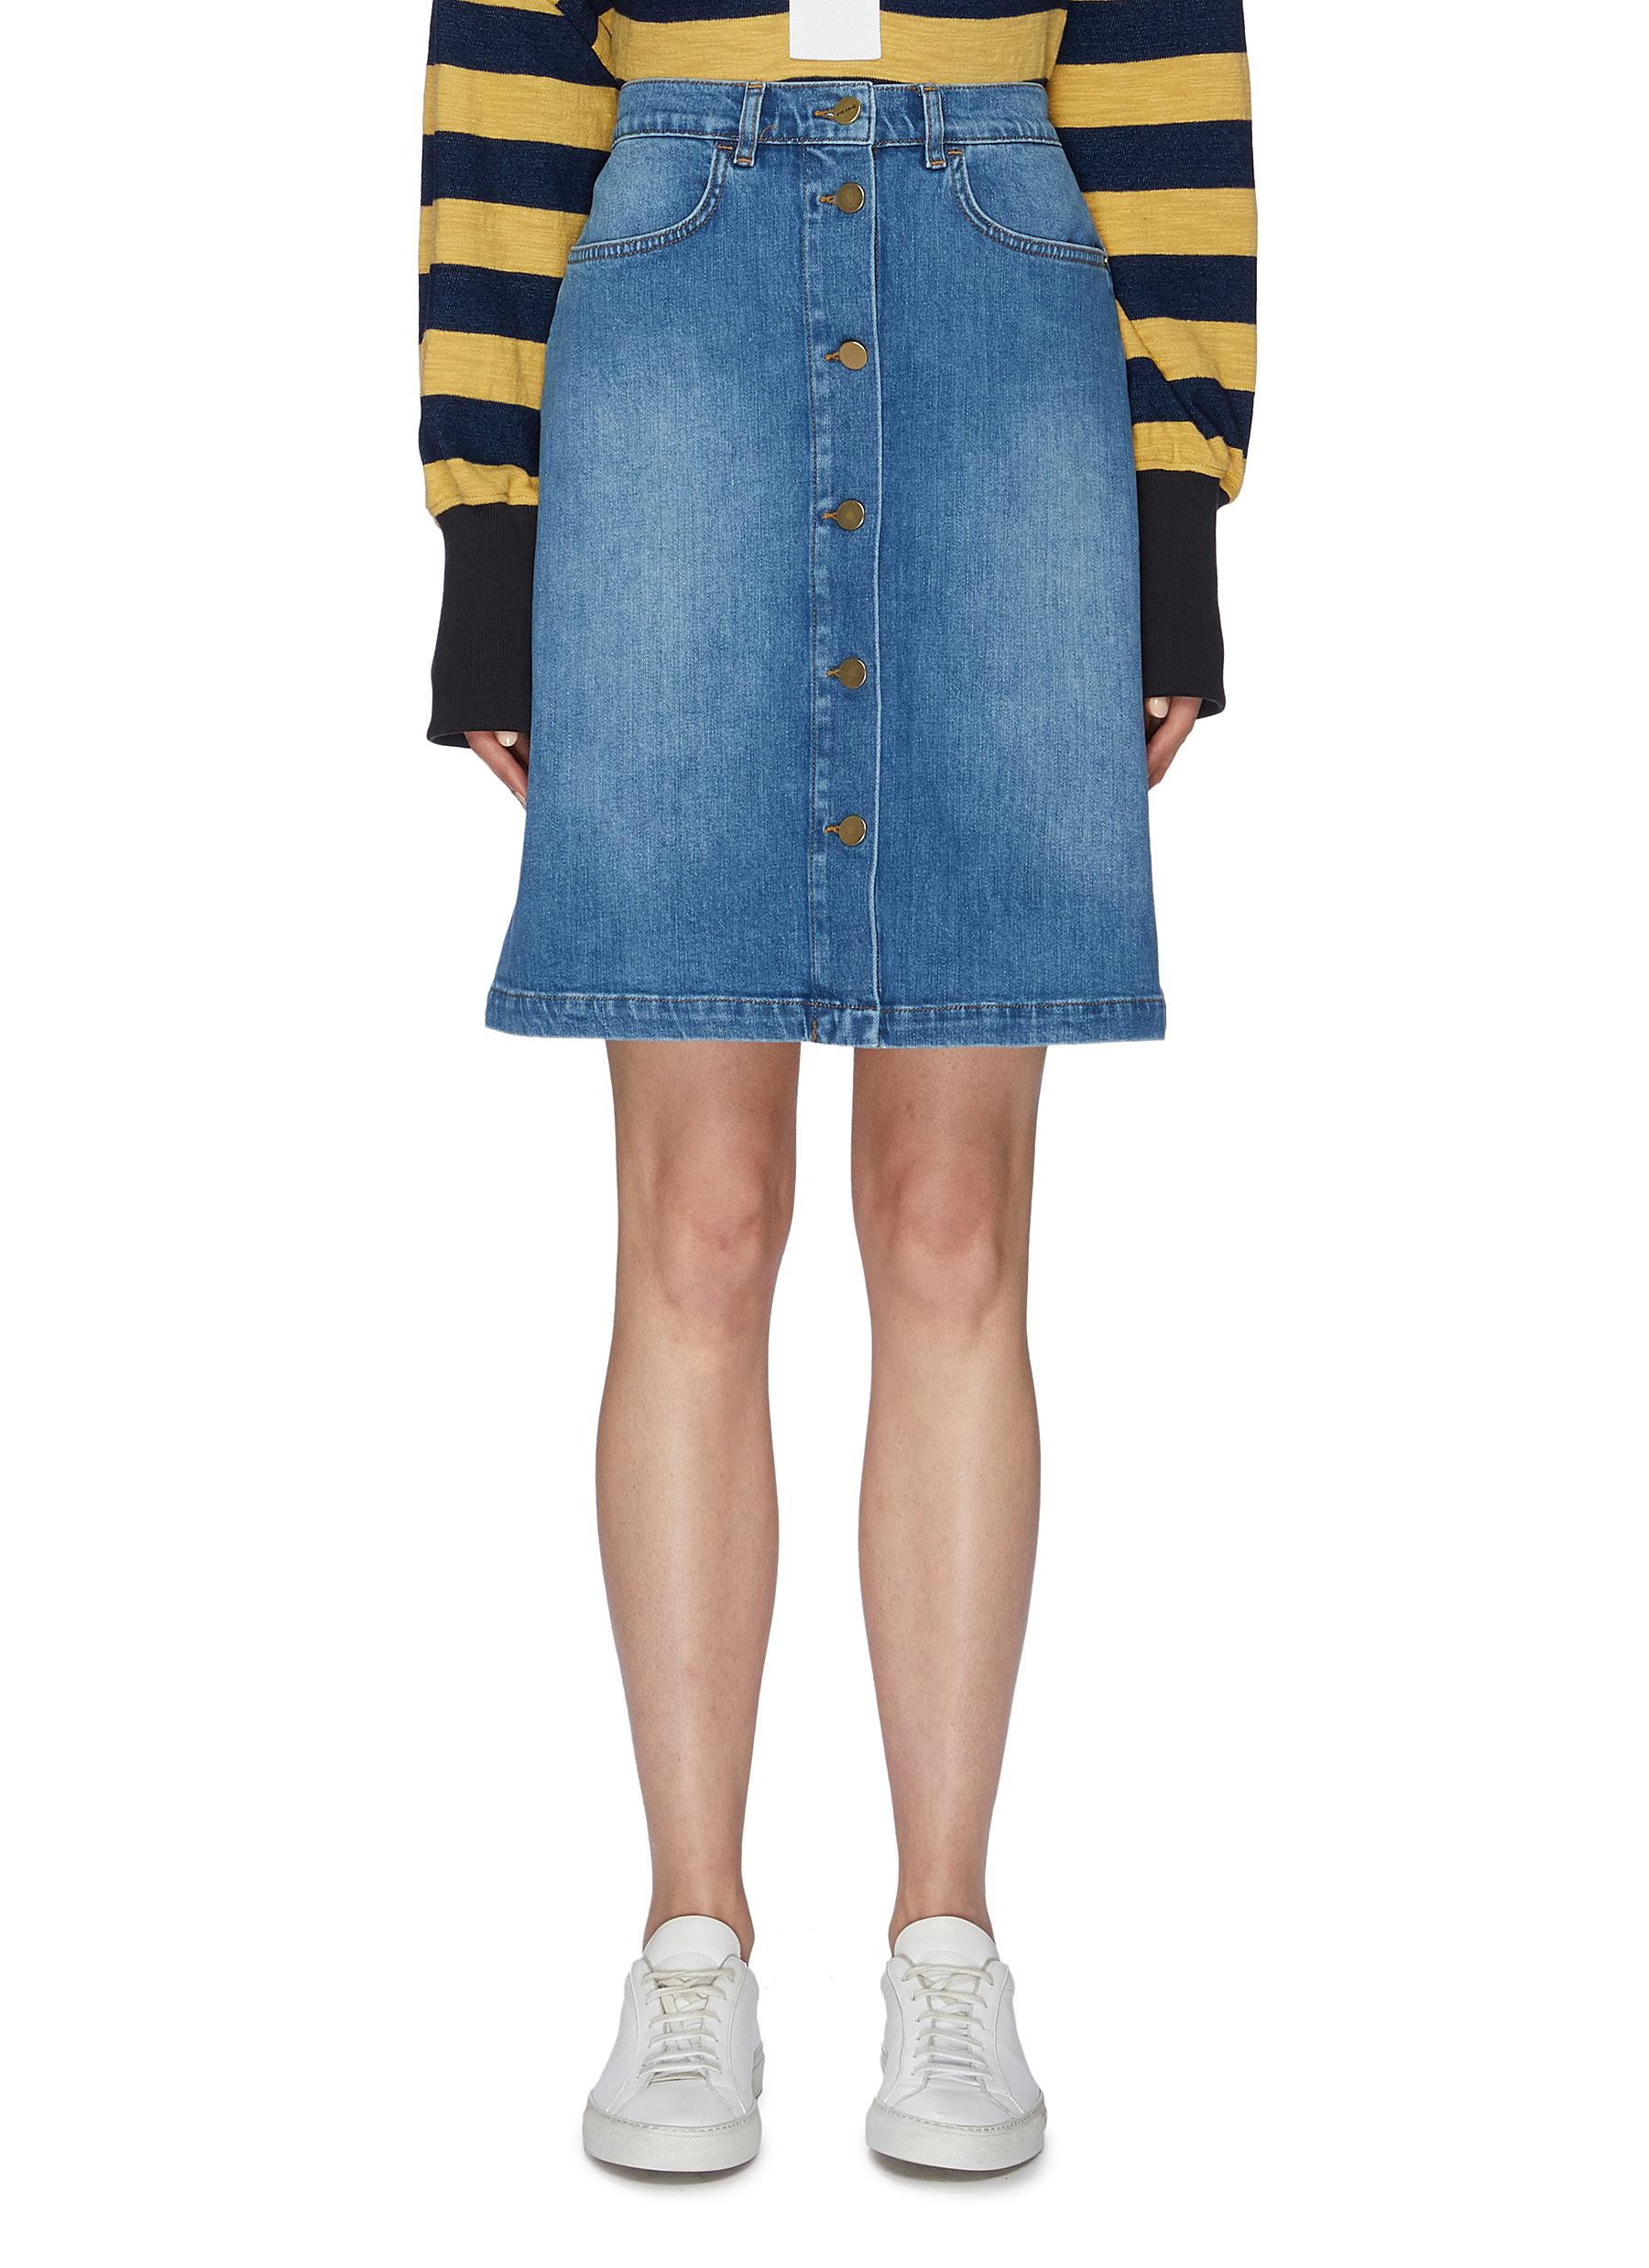 Vintage flared denim skirt by Frame Denim